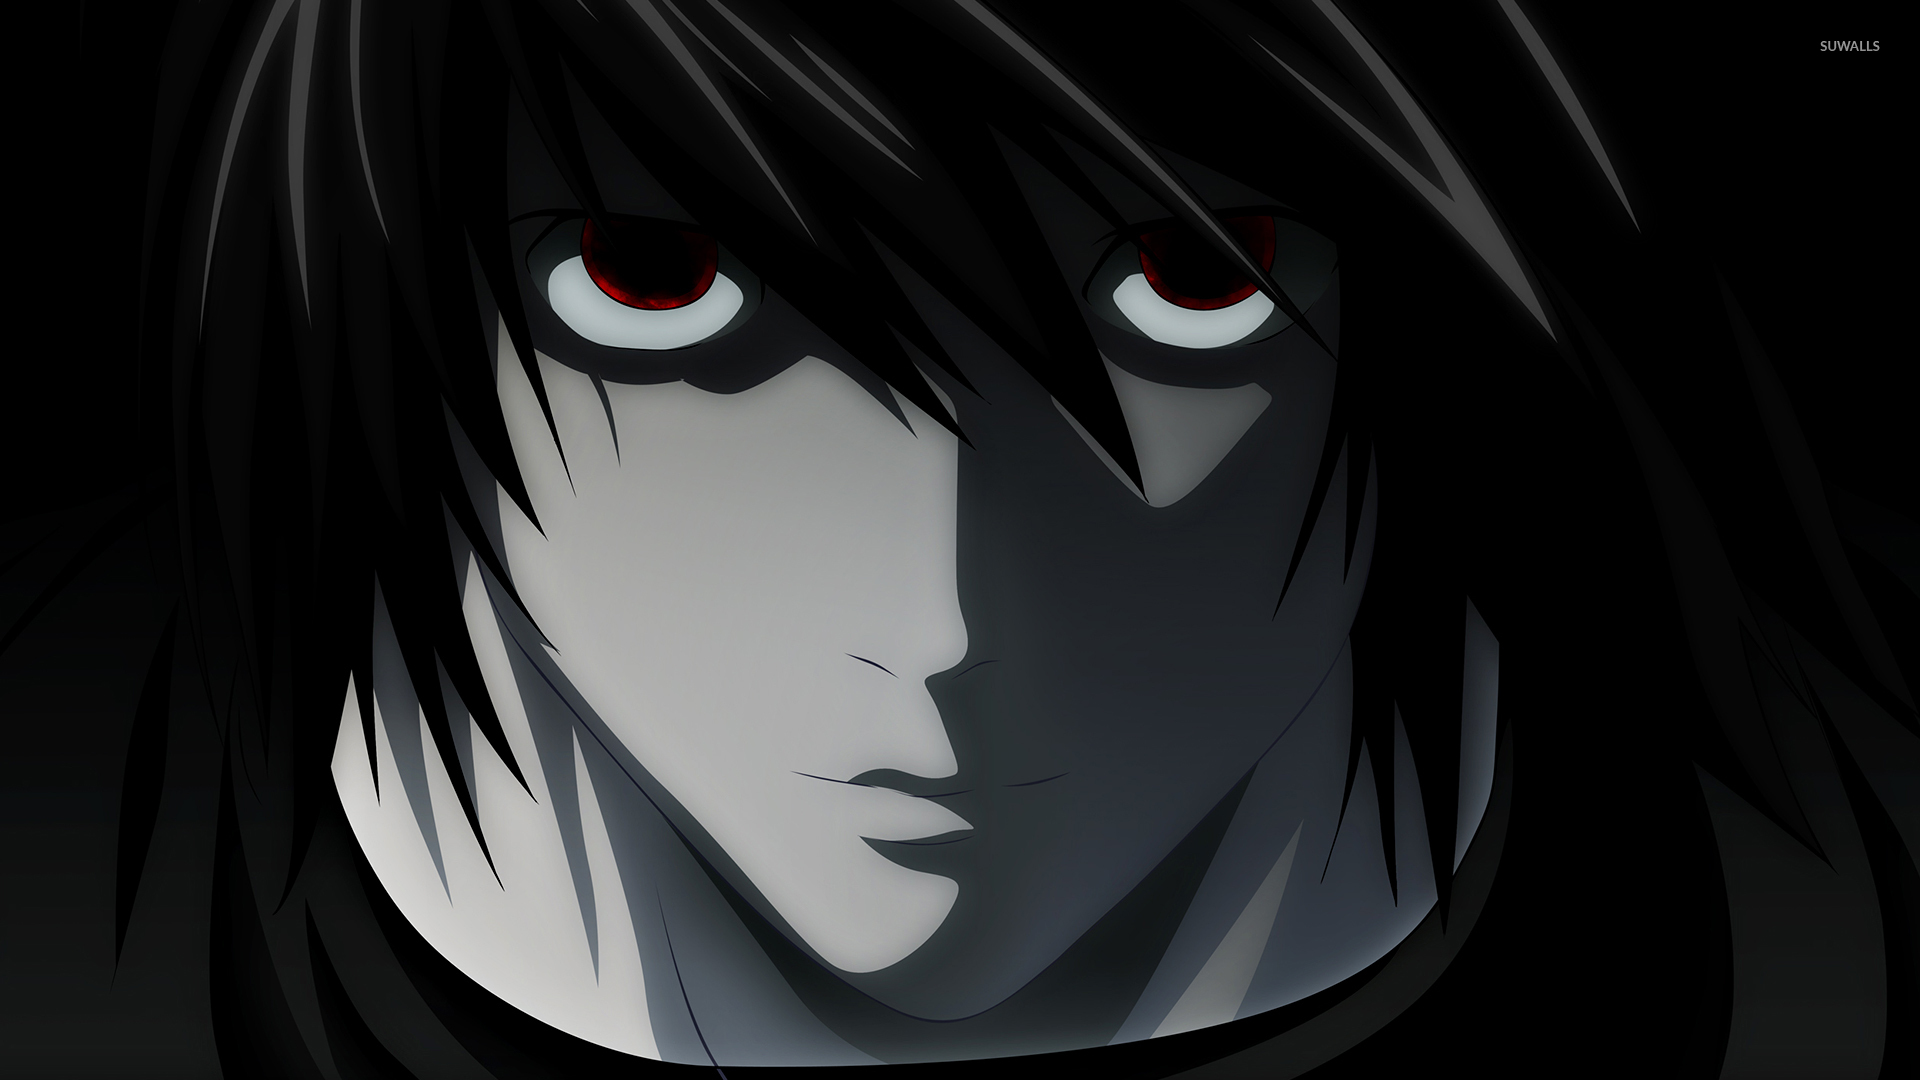 Wallpaper Manga Death Note